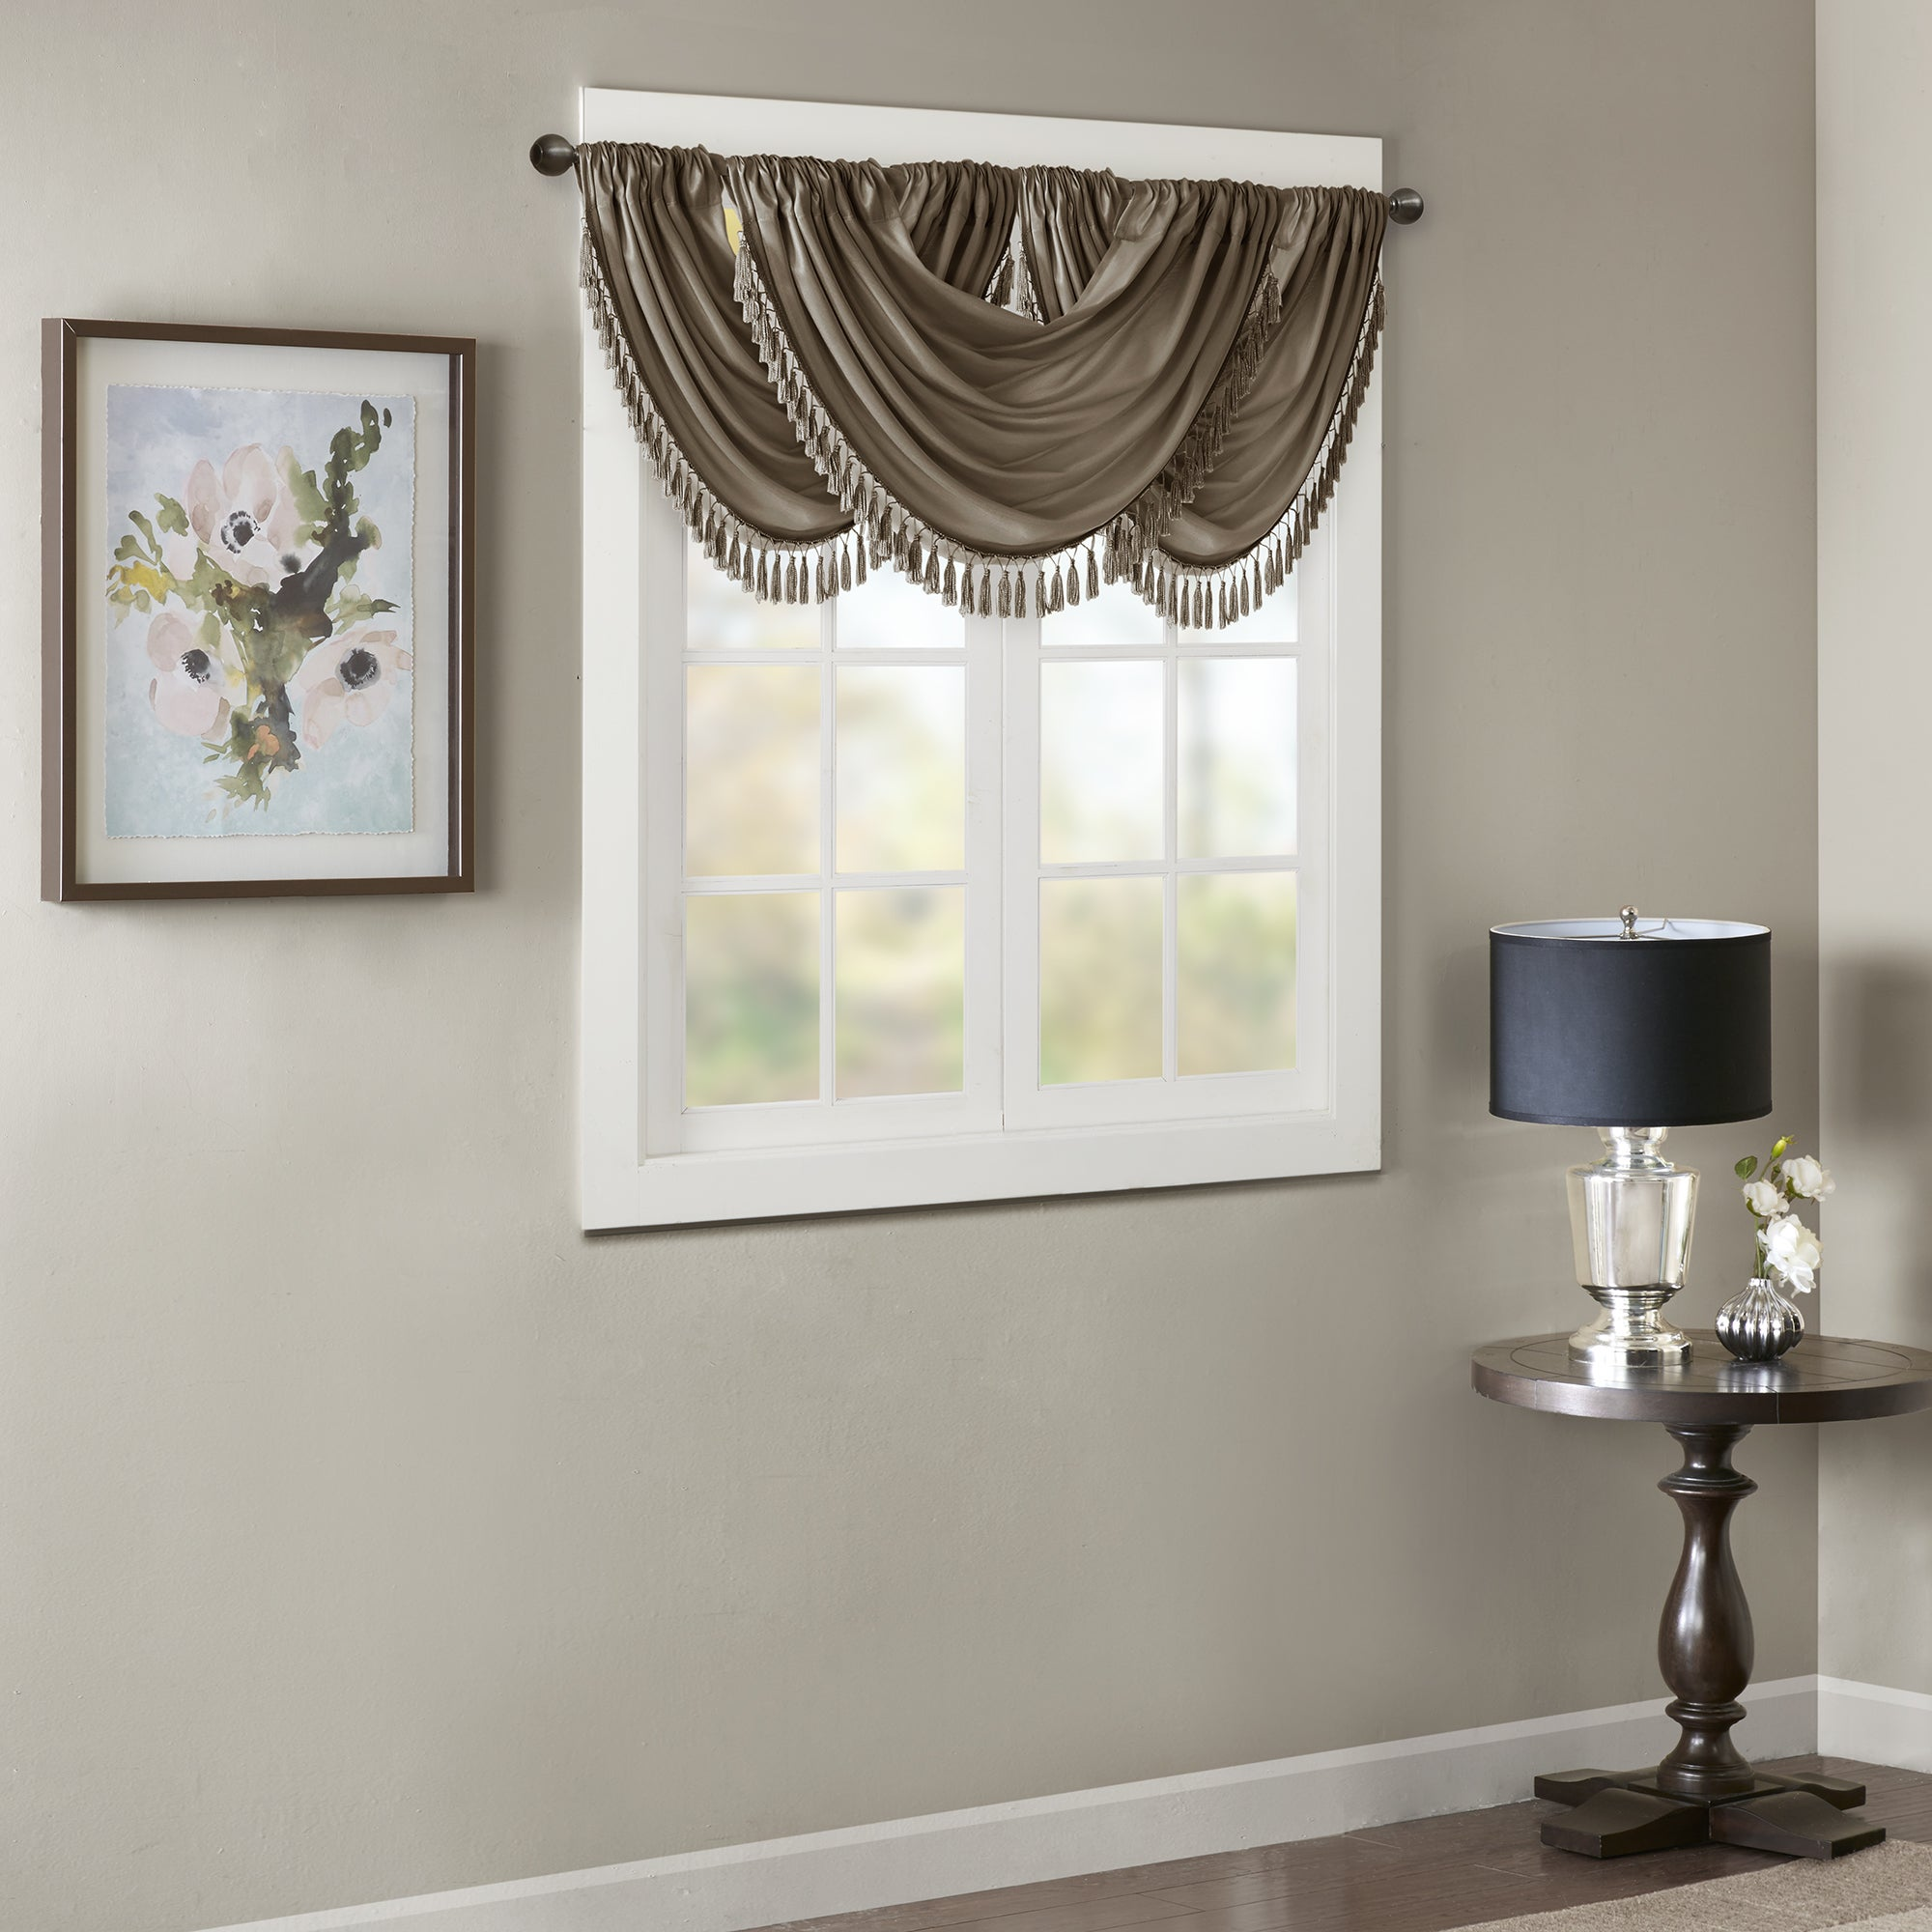 of curtains chen windows elegant swag swags valances jcpenney kitchen for window bedroom and waverly lush valance